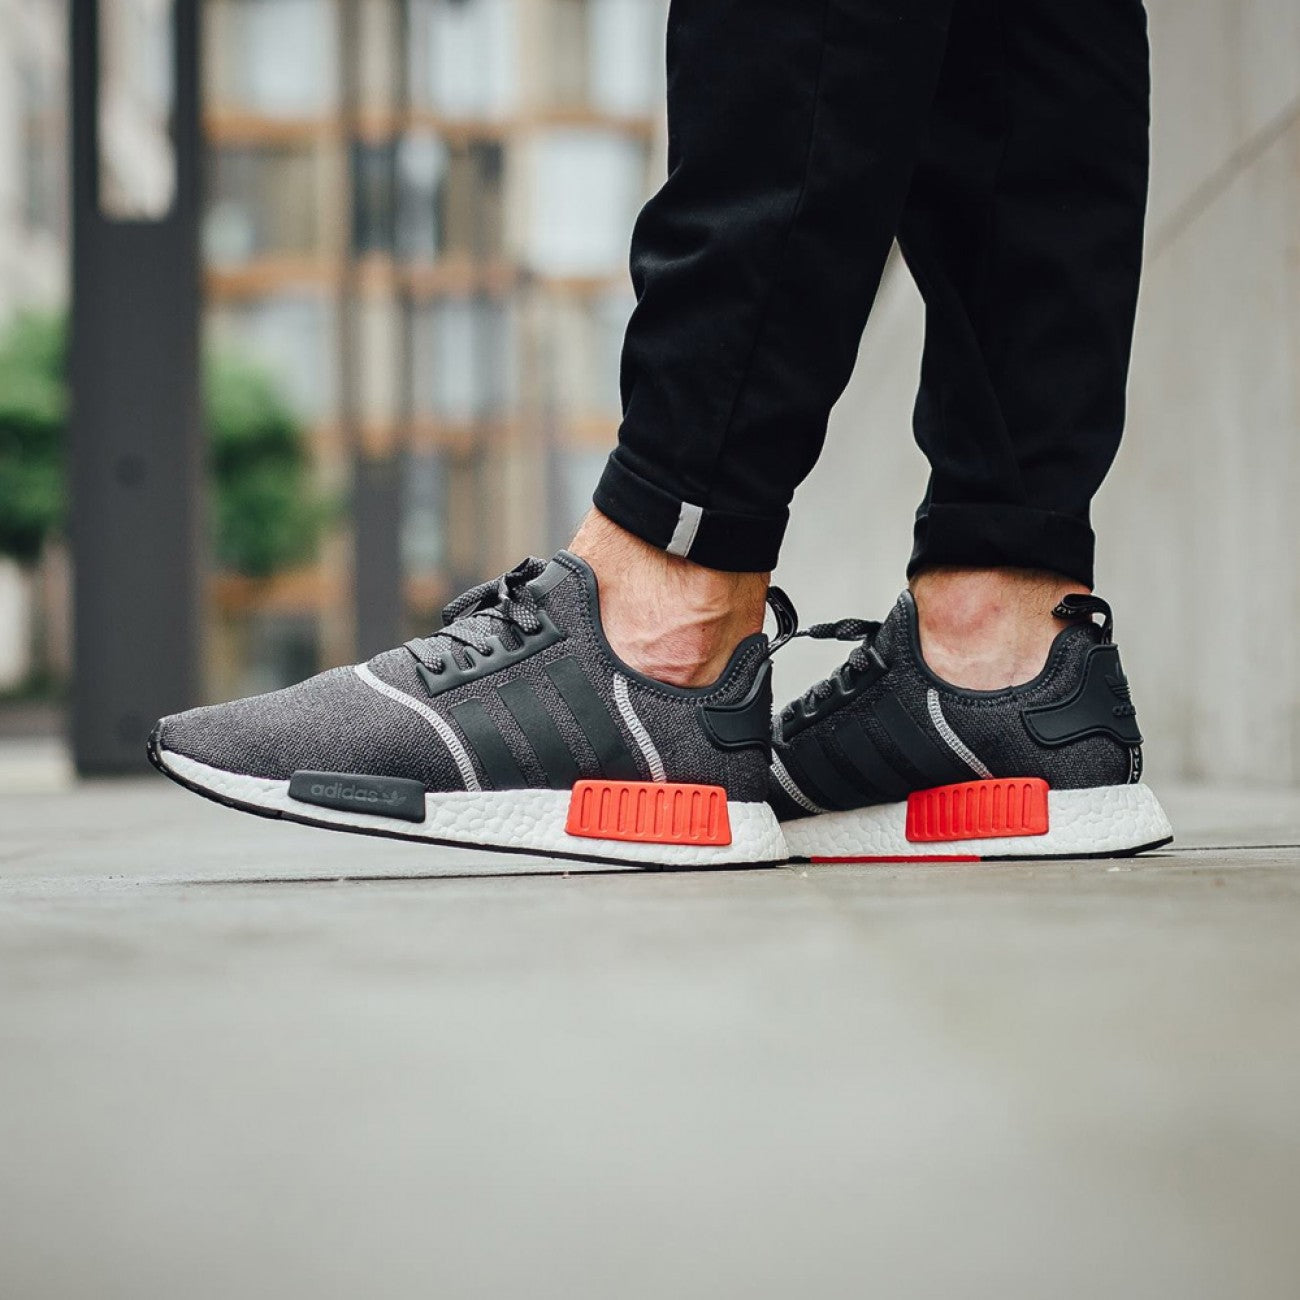 adidas nmd grey with reflective stripes